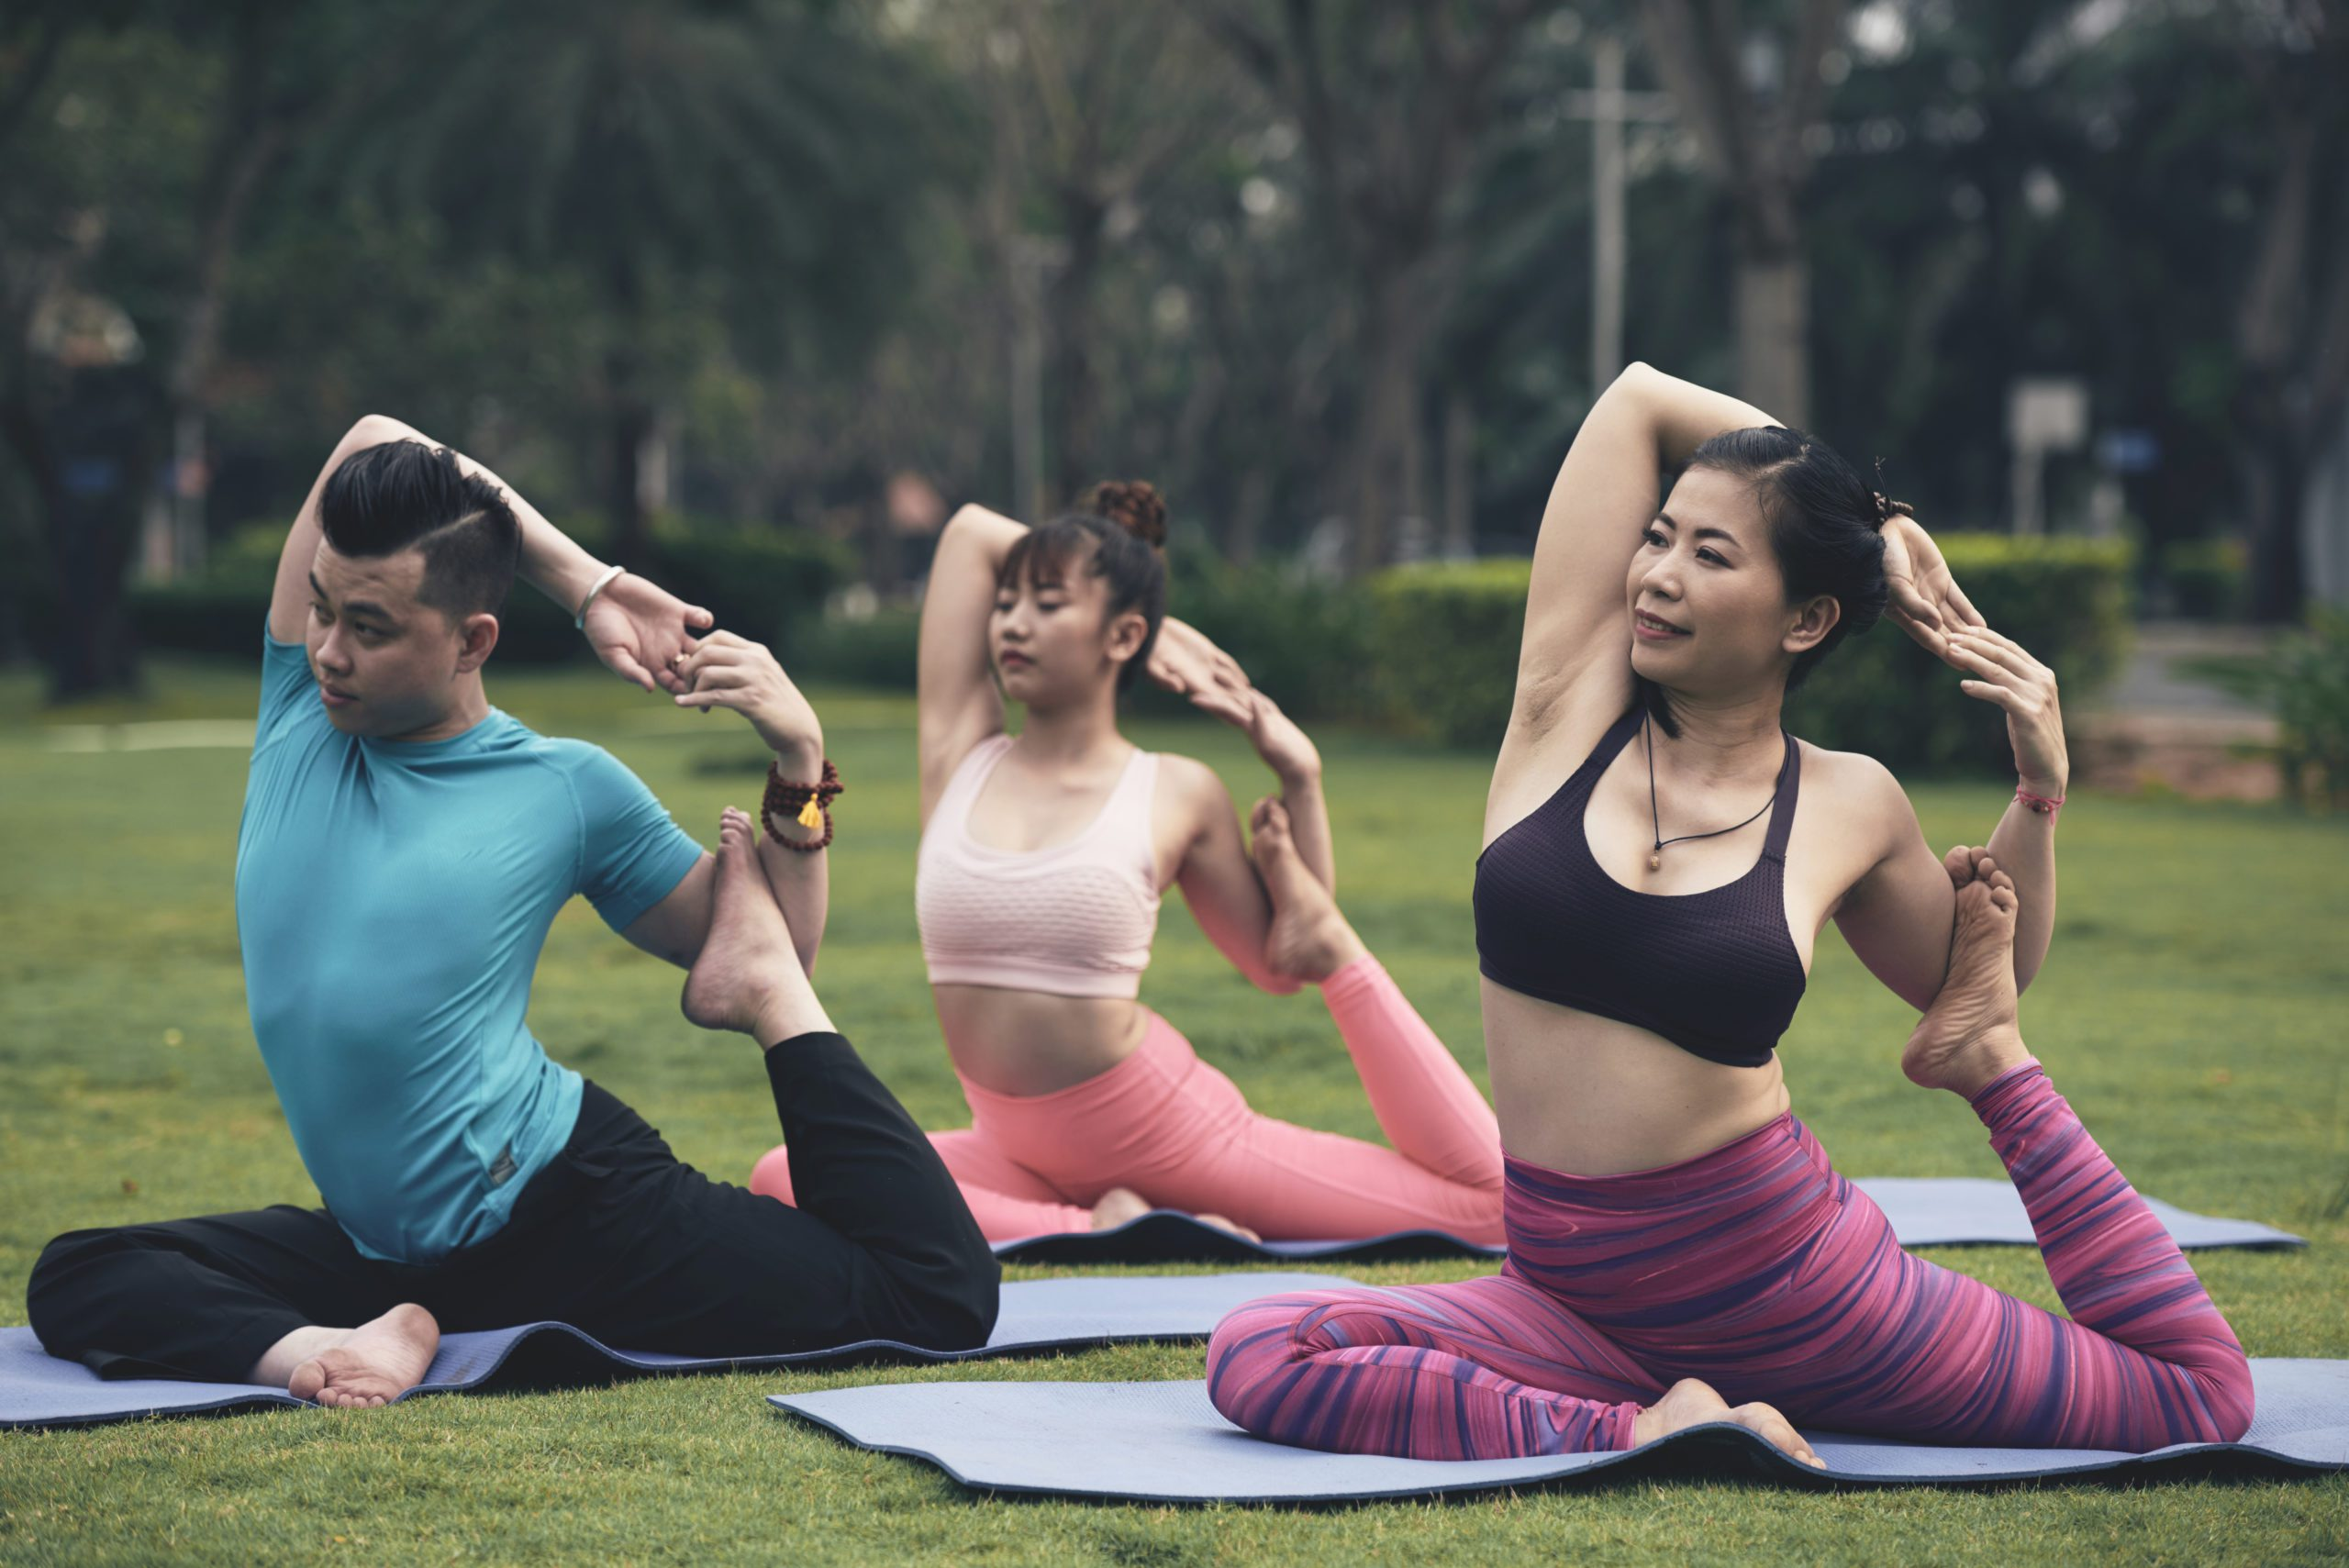 Young Asian people practicing pigeon yoga position outdoor